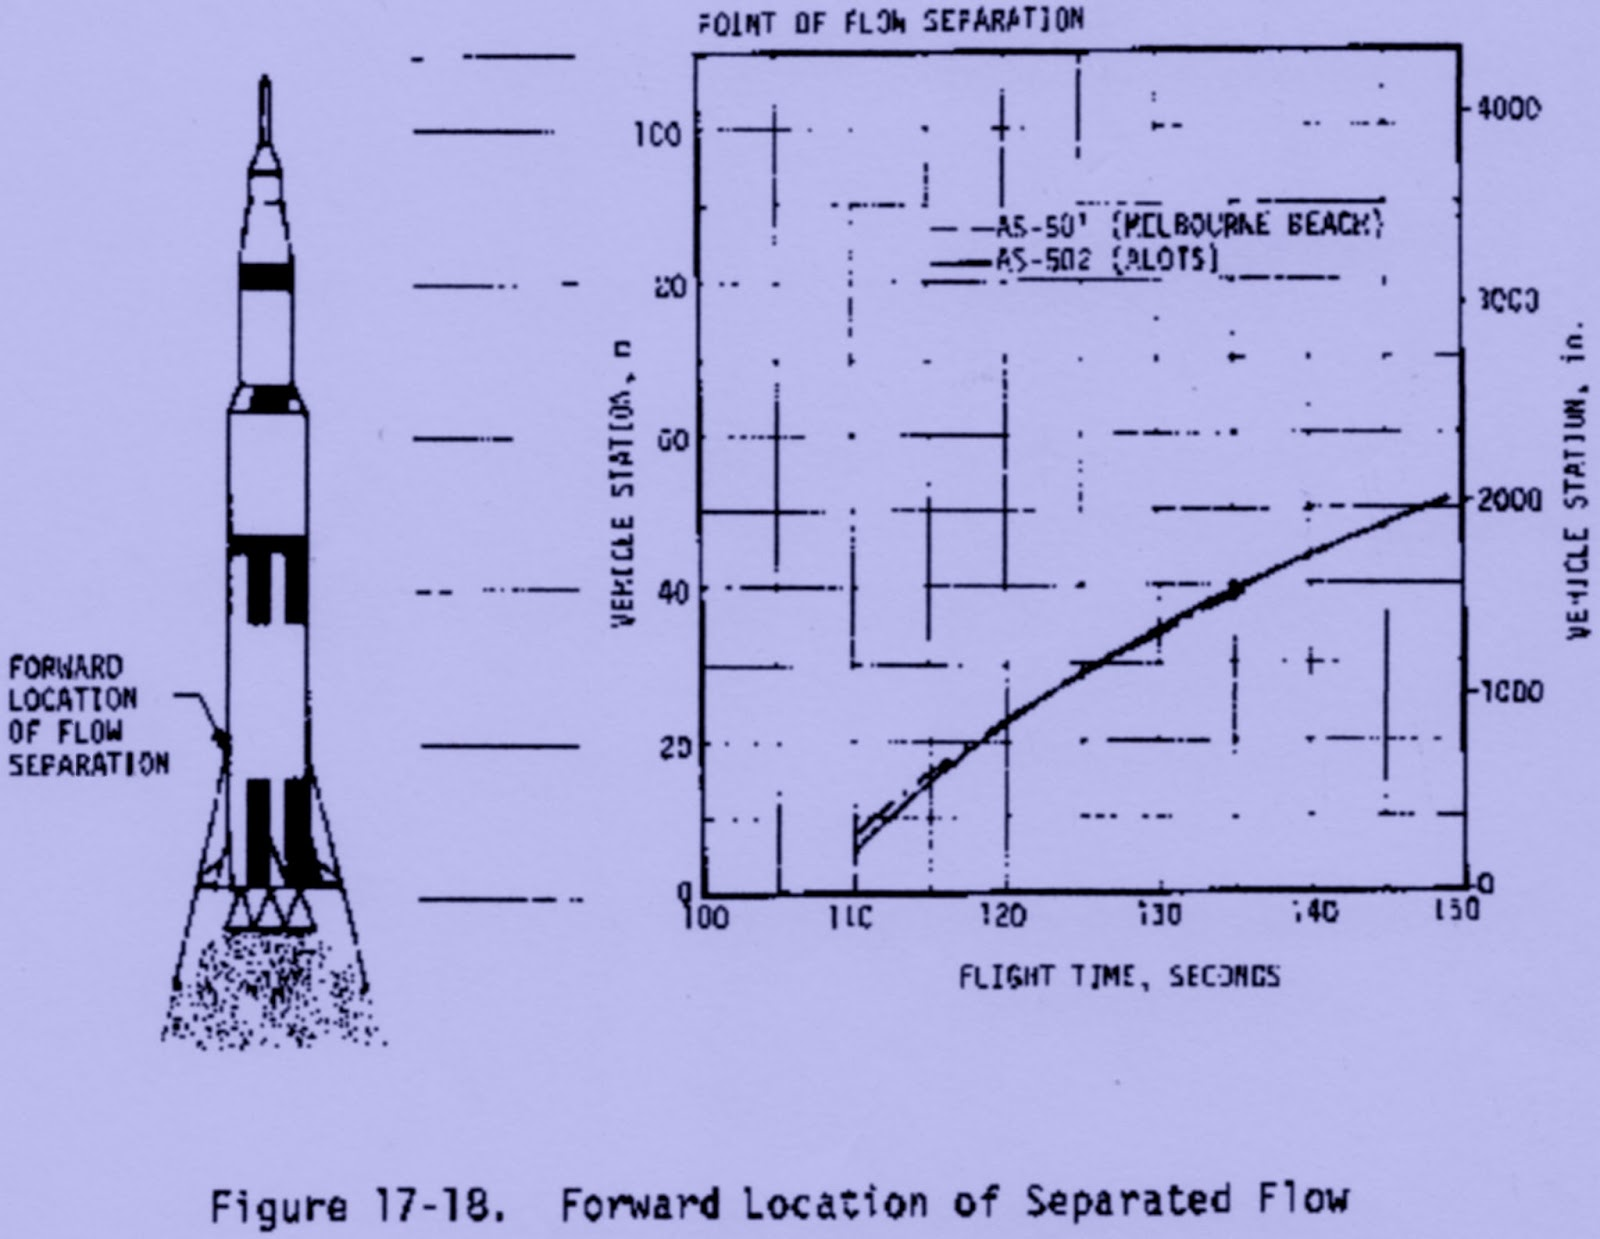 Growing Up With Spaceflight Saturn V Engine Diagram Flow Separation On The As 501 And 502 Flights Was First Observed Between 105 110 Seconds Measurements Have Been Made Of Point